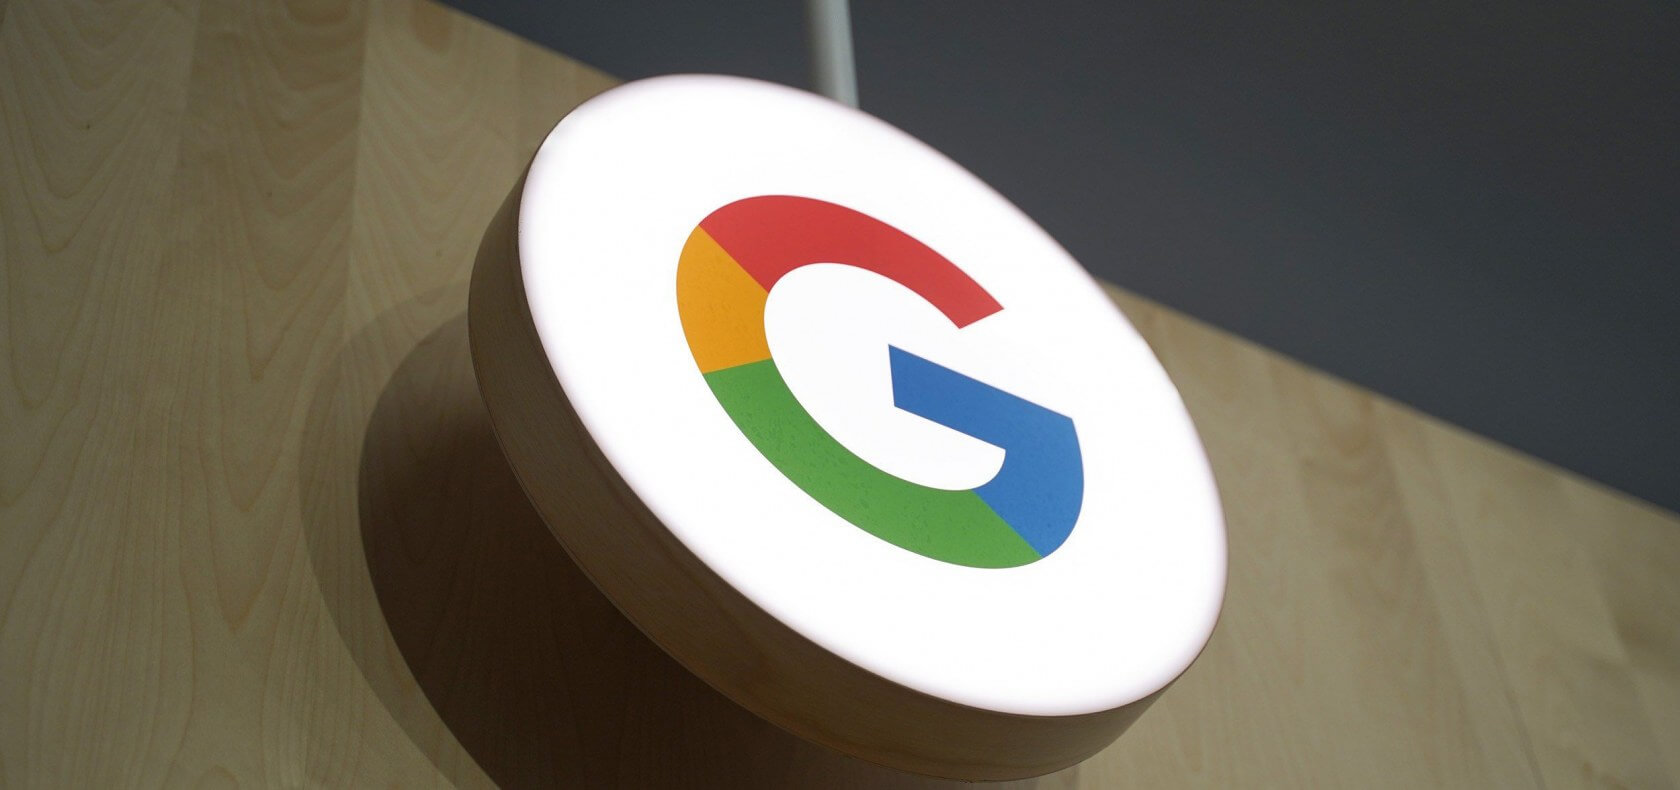 Google is now helping European Android users choose alternative browsers and search engines